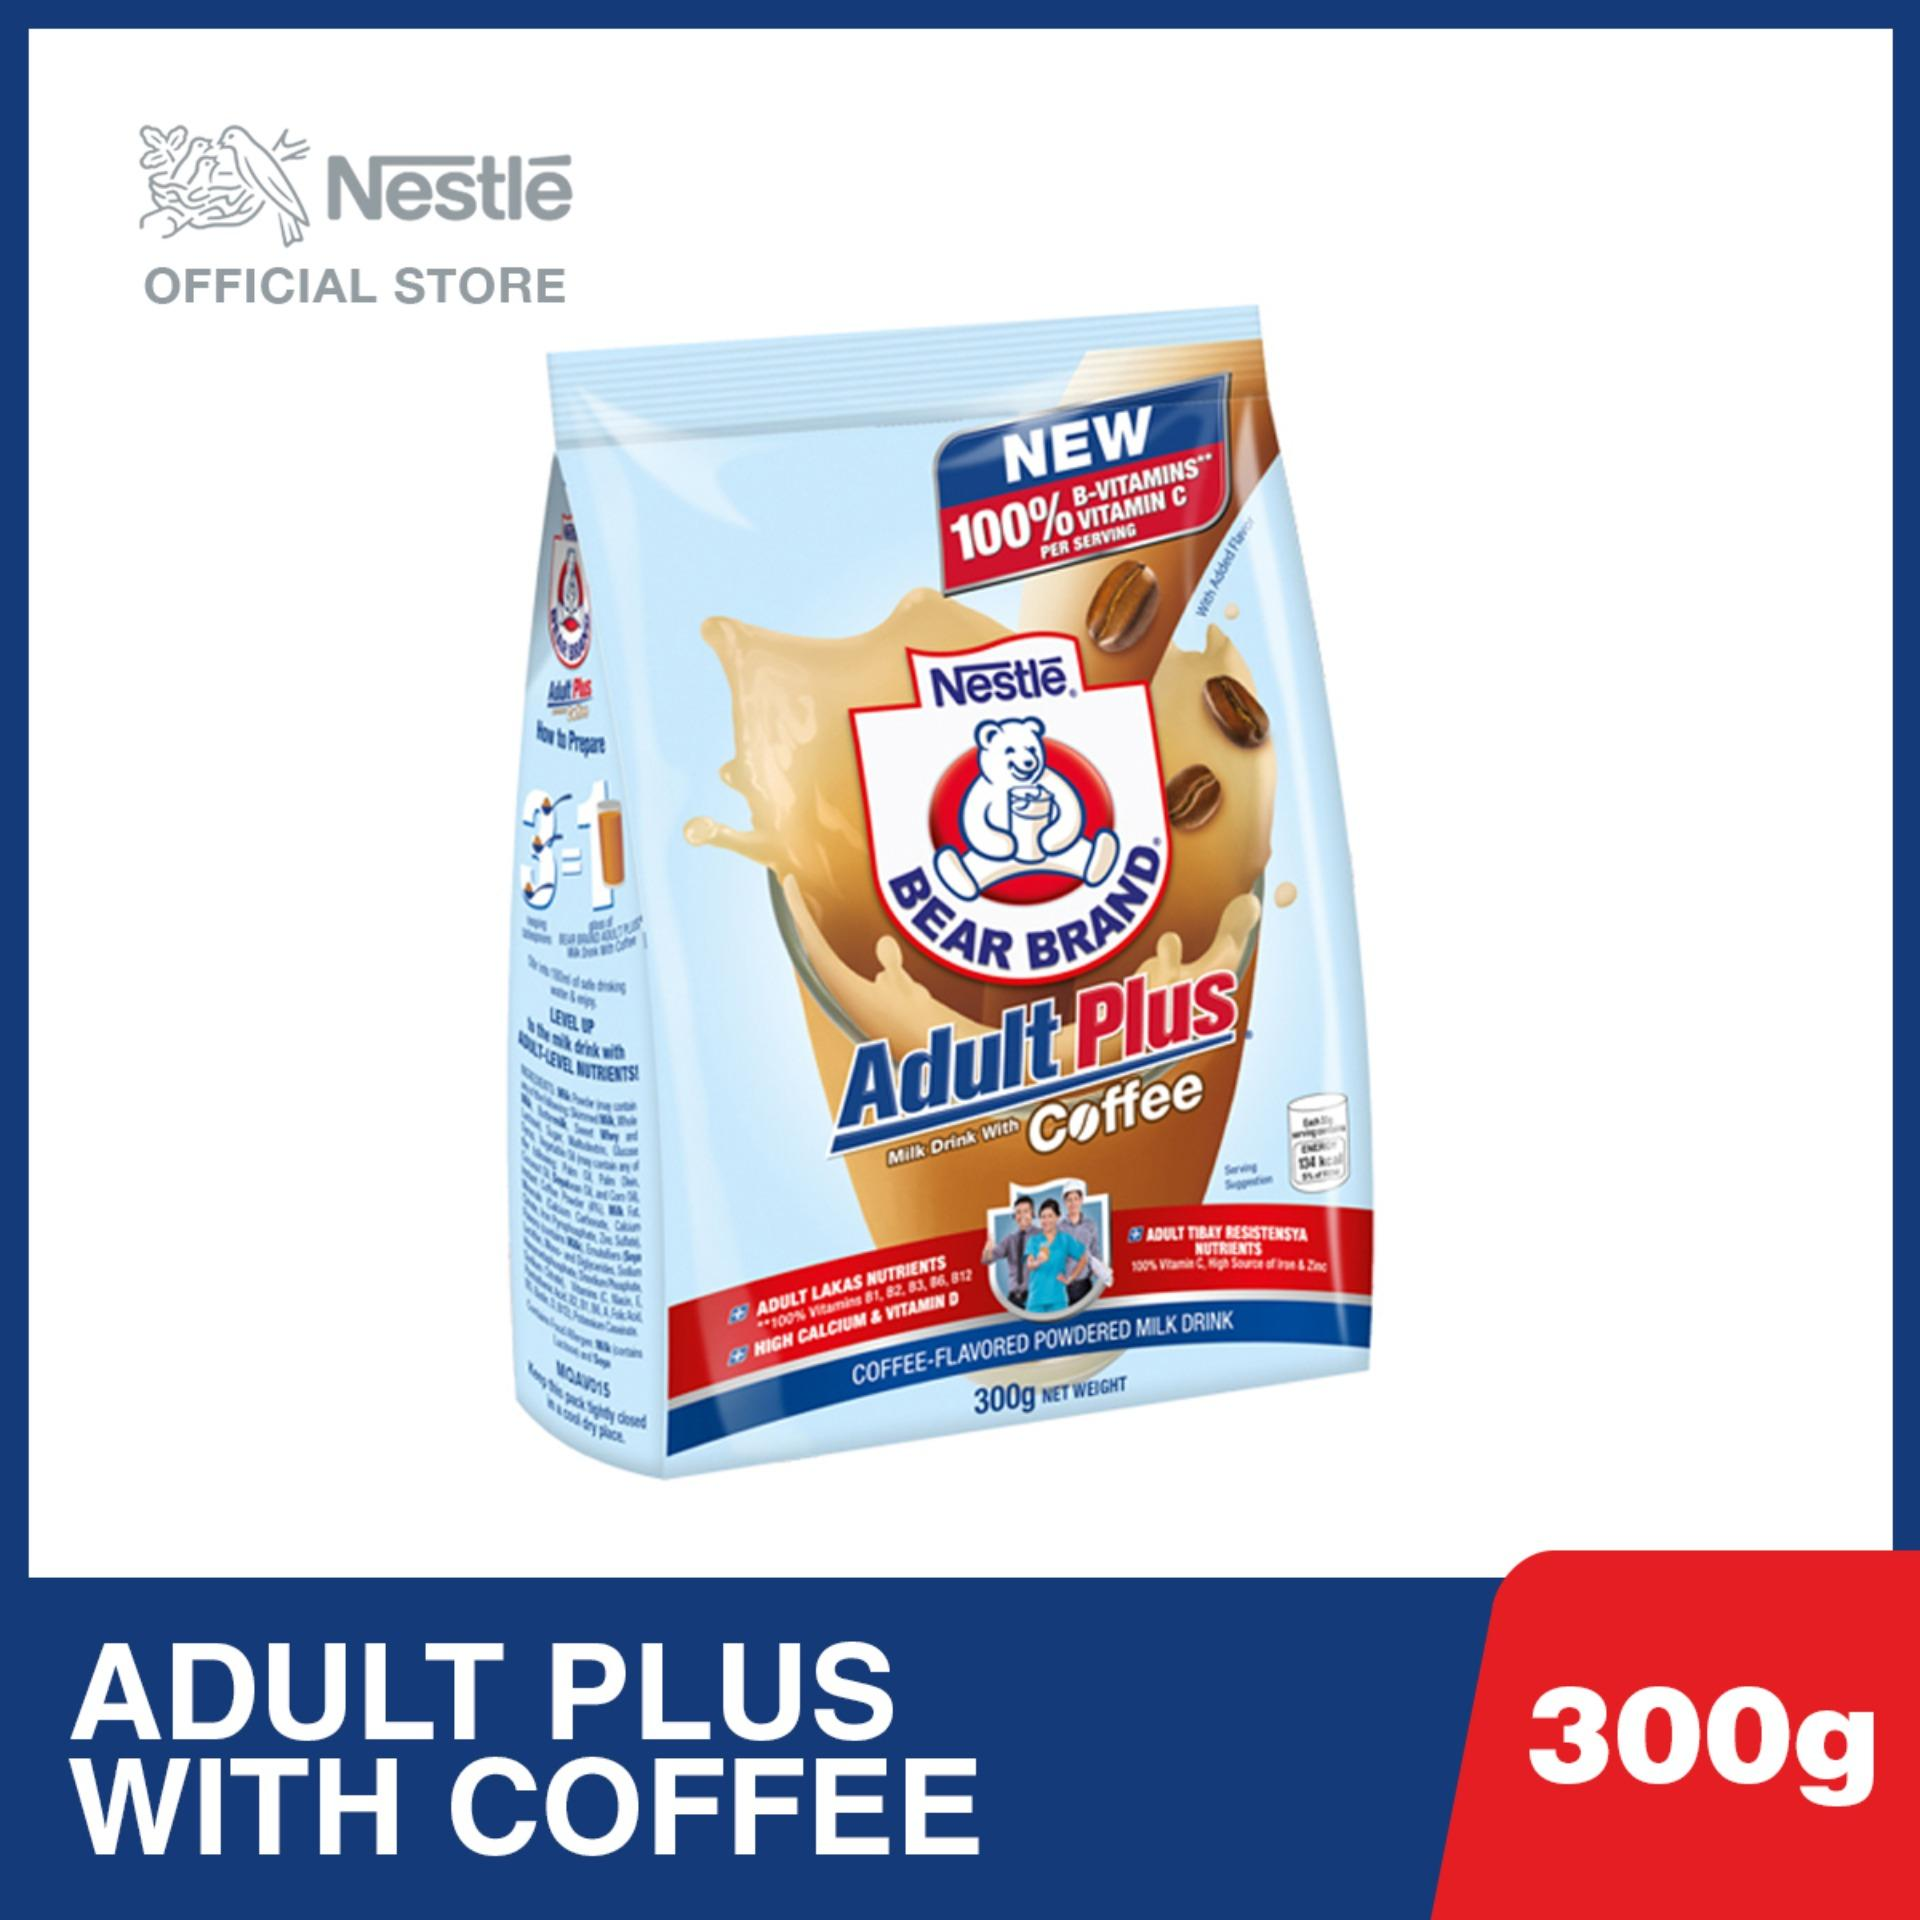 Nestle Bear Brand Adult Plus Powdered Milk Drink with Coffee 300g